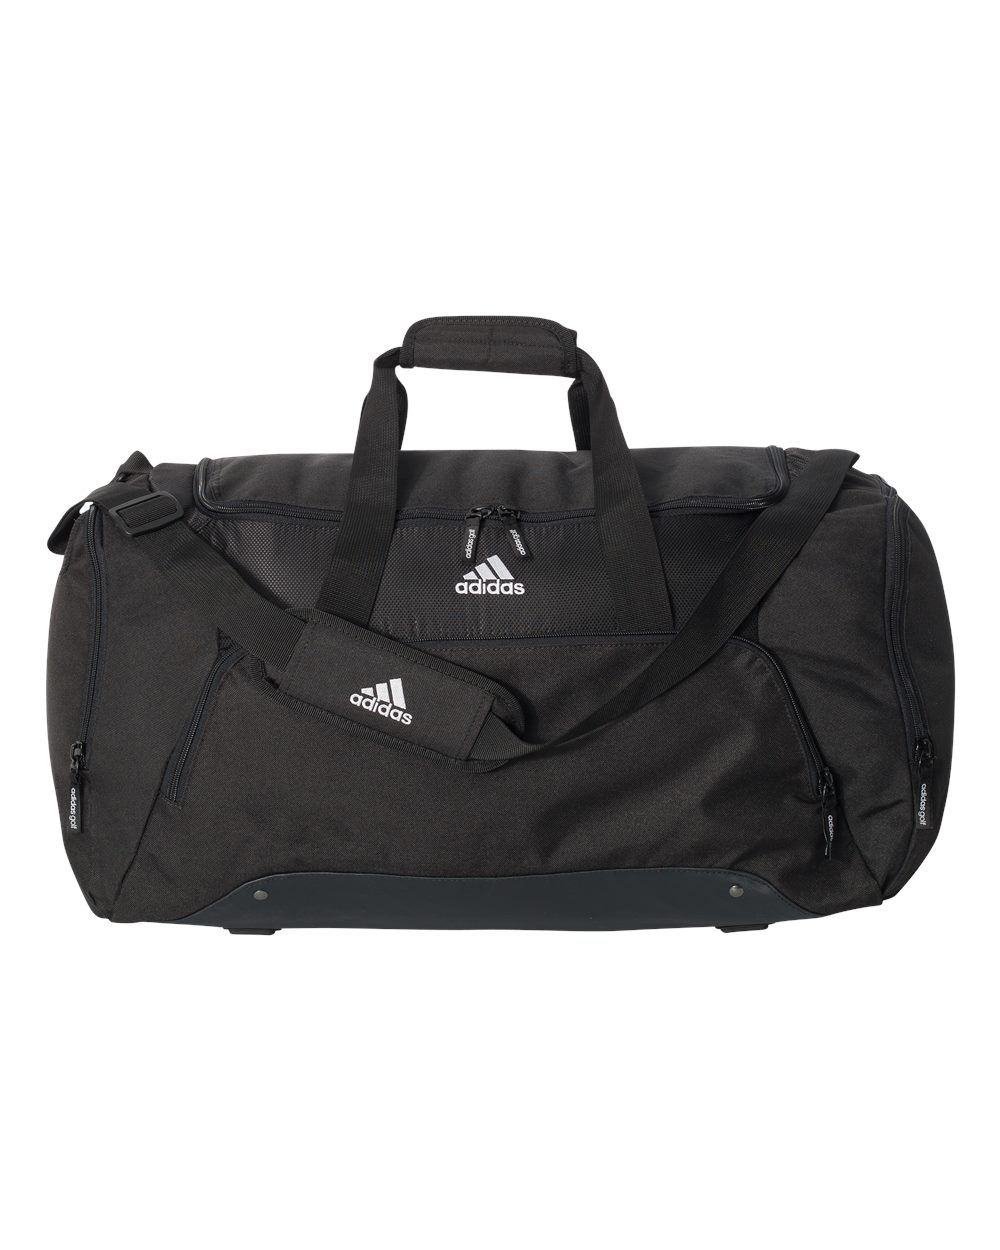 51.9L Medium Duffel